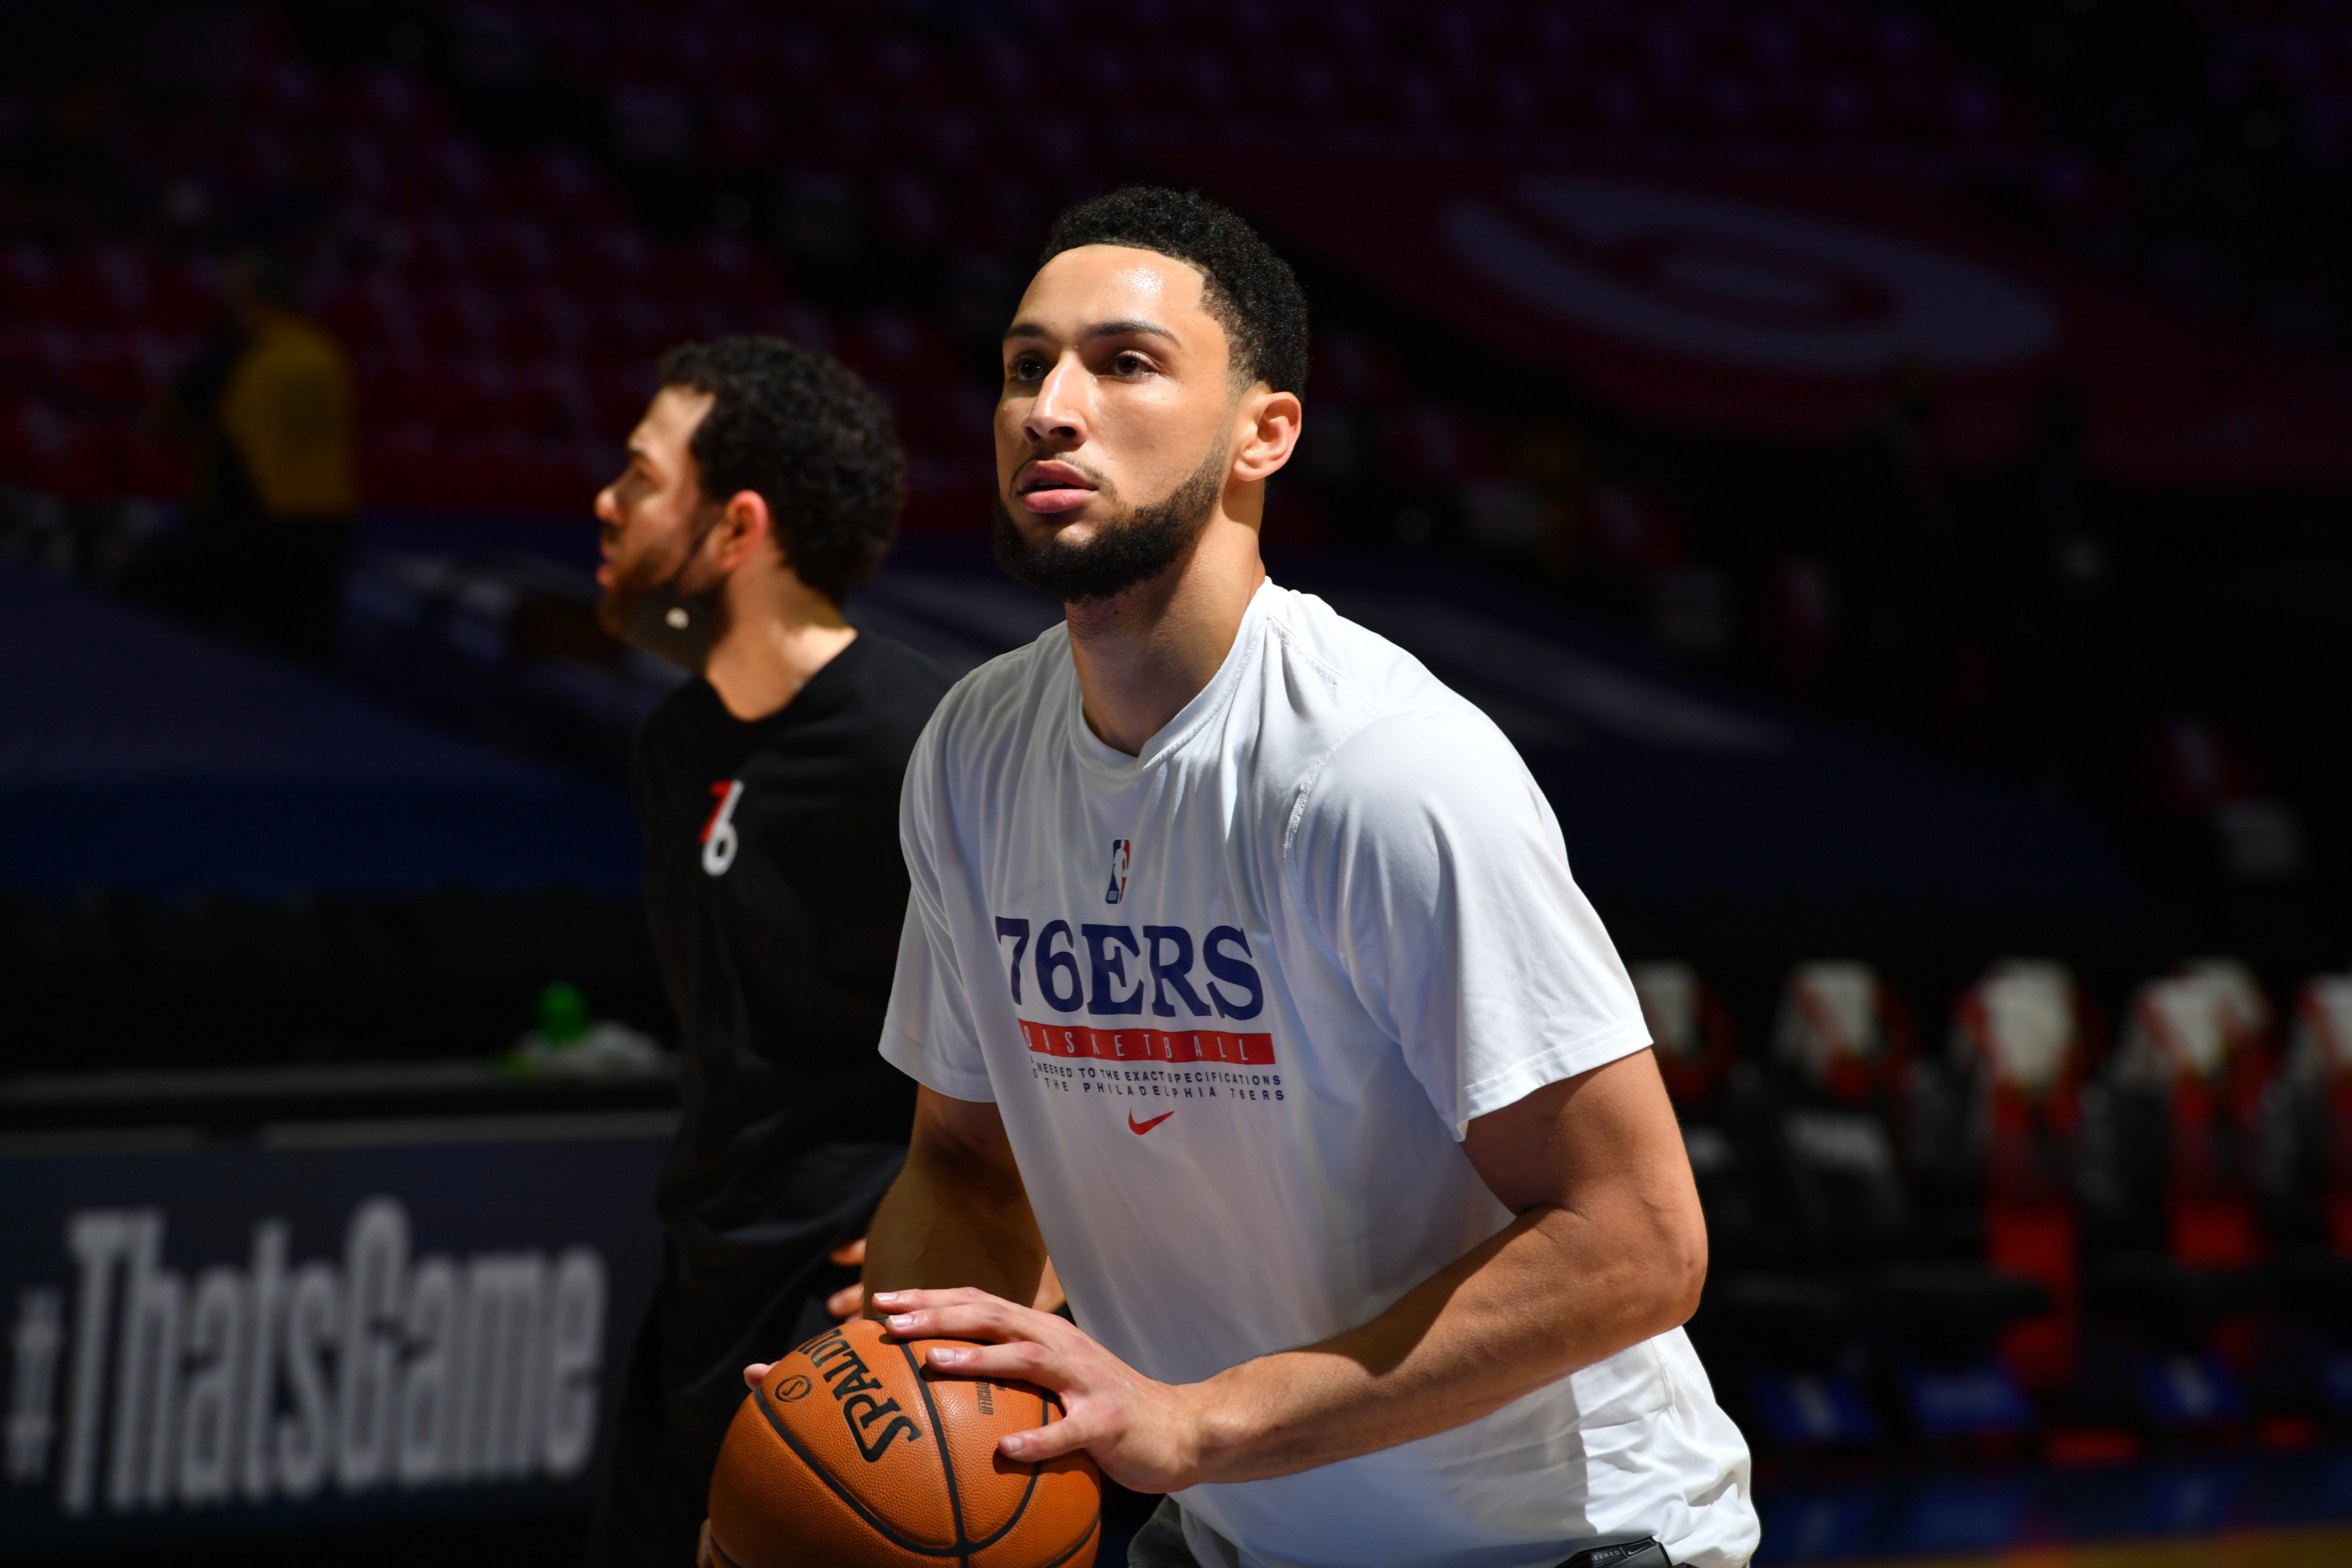 Ben Simmons #25 of the Philadelphia 76ers practices free throws prior to a game against the Atlanta Hawks during Round 2, Game 7 of the Eastern Conference Playoffs on June 20, 2021 at Wells Fargo Center in Philadelphia, Pennsylvania.